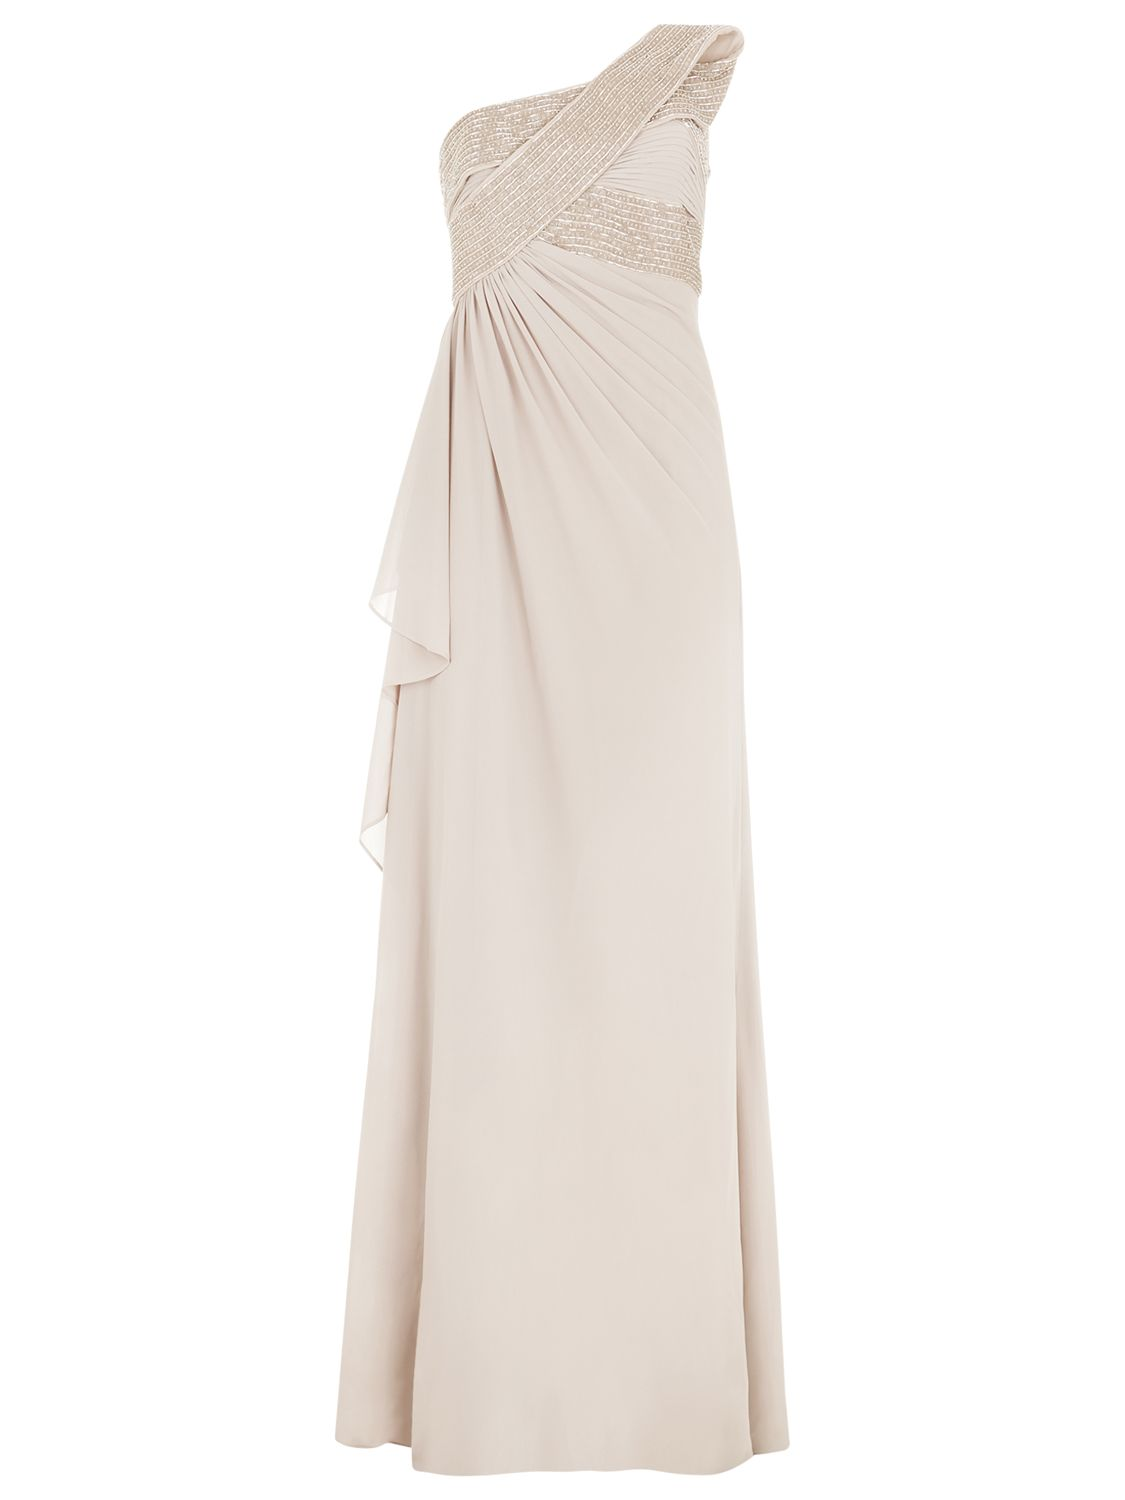 jacques vert lorcan mullany sequin bead detail gown oyster, jacques, vert, lorcan, mullany, sequin, bead, detail, gown, oyster, jacques vert, 16|20|18|14, clearance, womenswear offers, womens dresses offers, new years party offers, women, eveningwear, special offers, plus size, inactive womenswear, new reductions, womens dresses, party outfits, evening gowns, eveningwear offers, 1692344